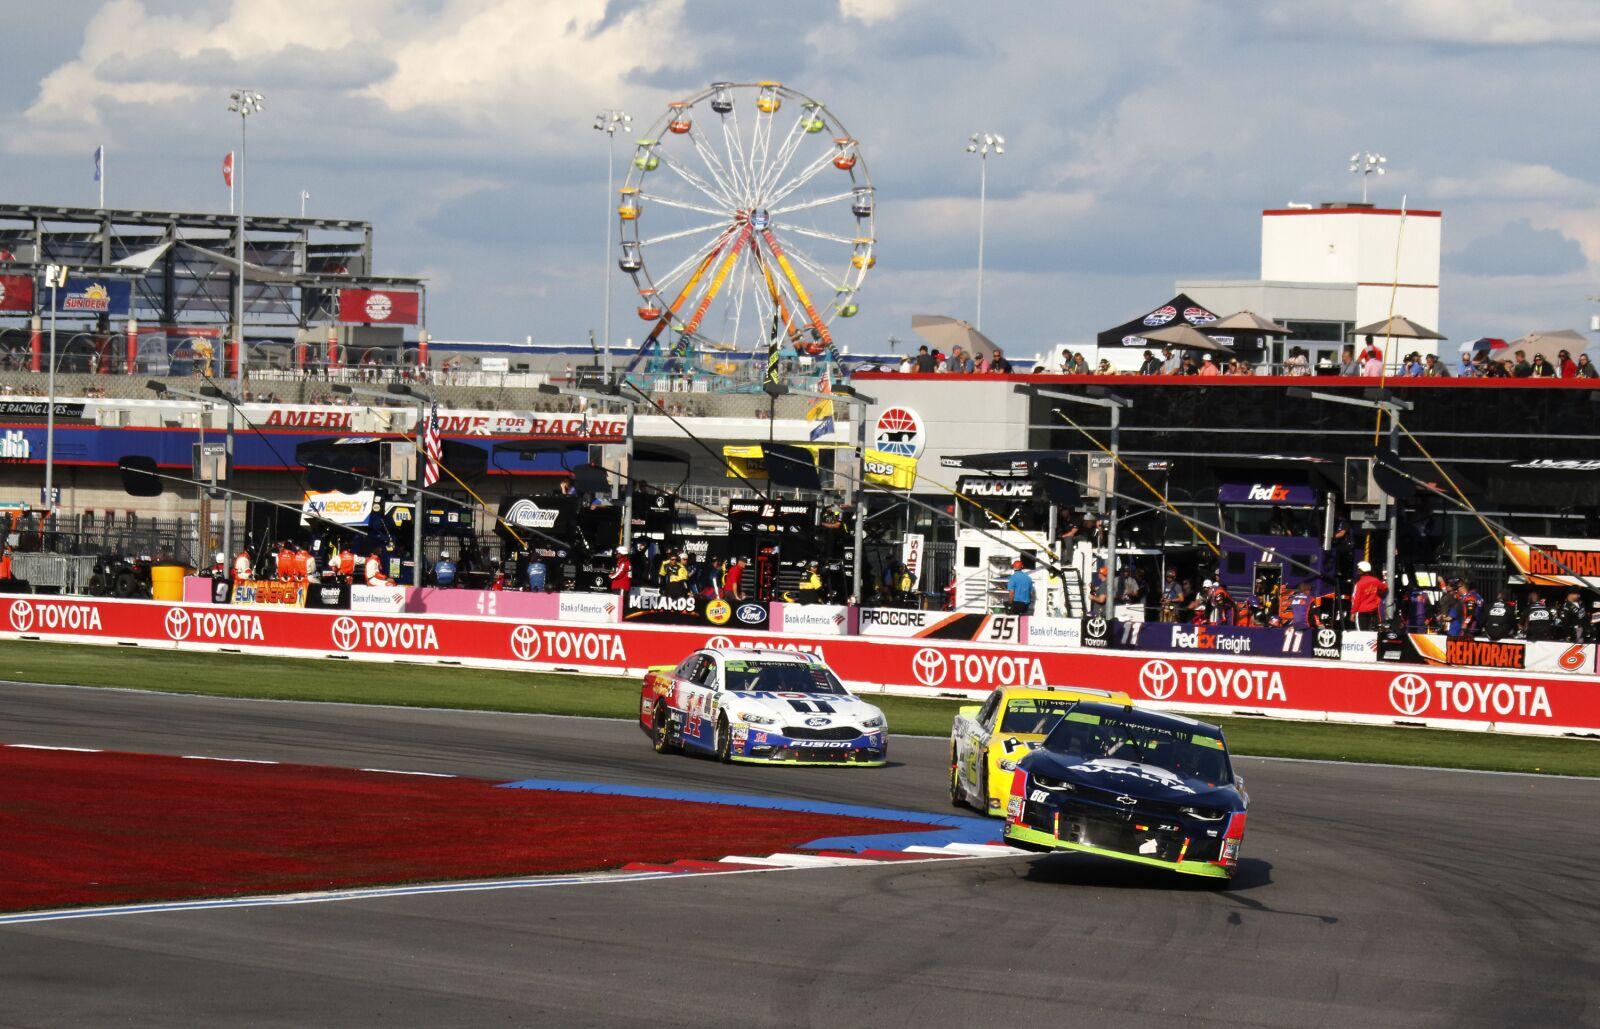 More NASCAR ROVAL races at other tracks? Marcus Smith says no